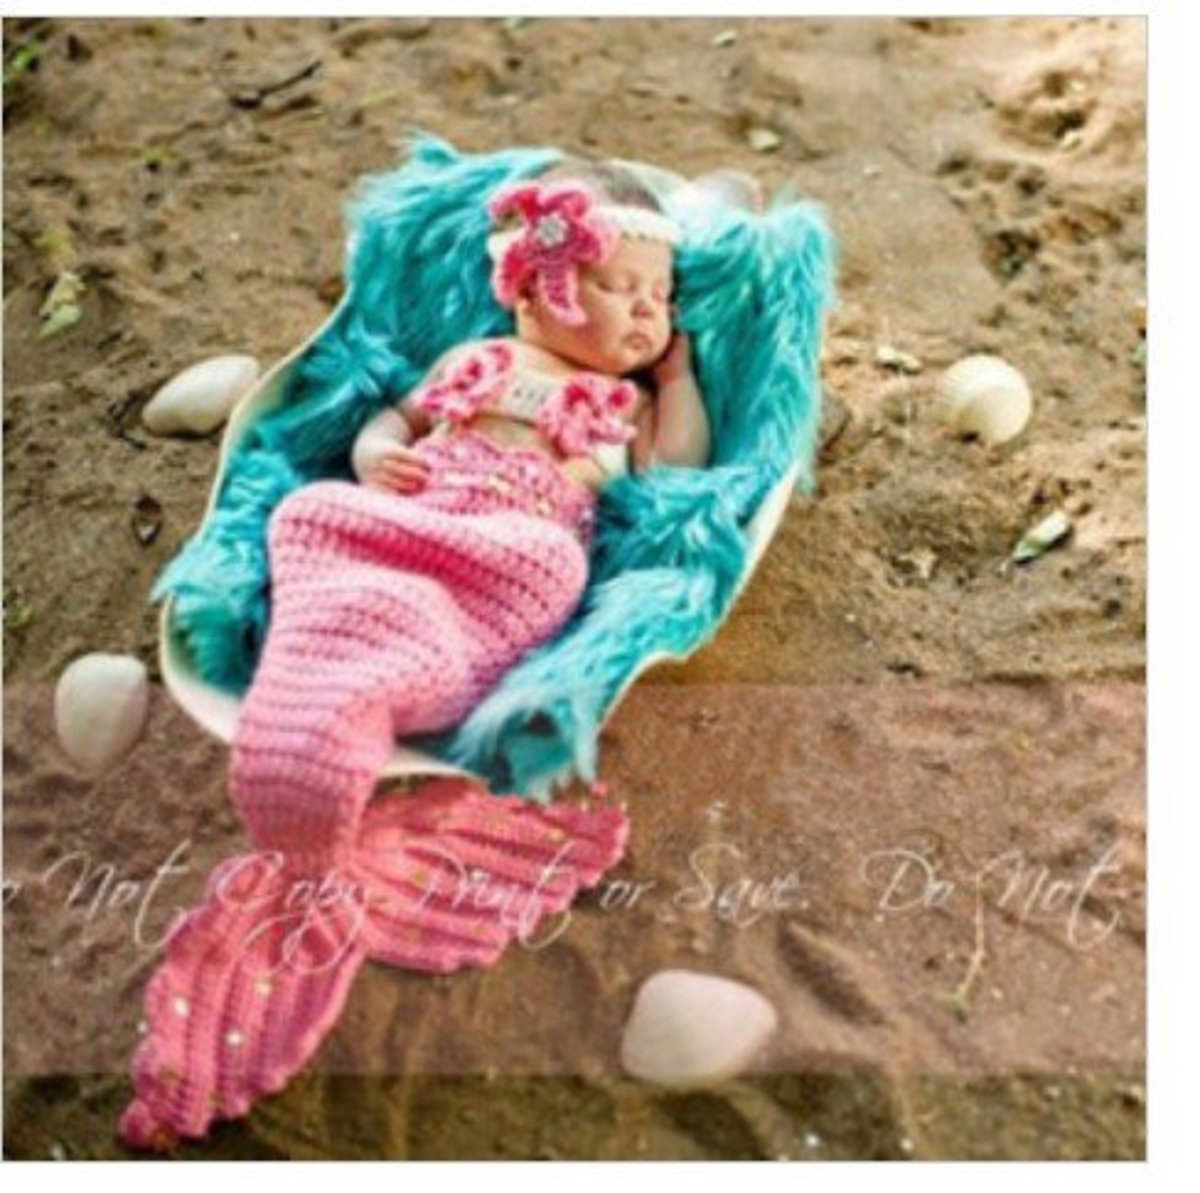 Crochet Pattern For Baby Mermaid Tail : Baby Mermaid Costume - Crochet Photo Props! Buy it or make it!